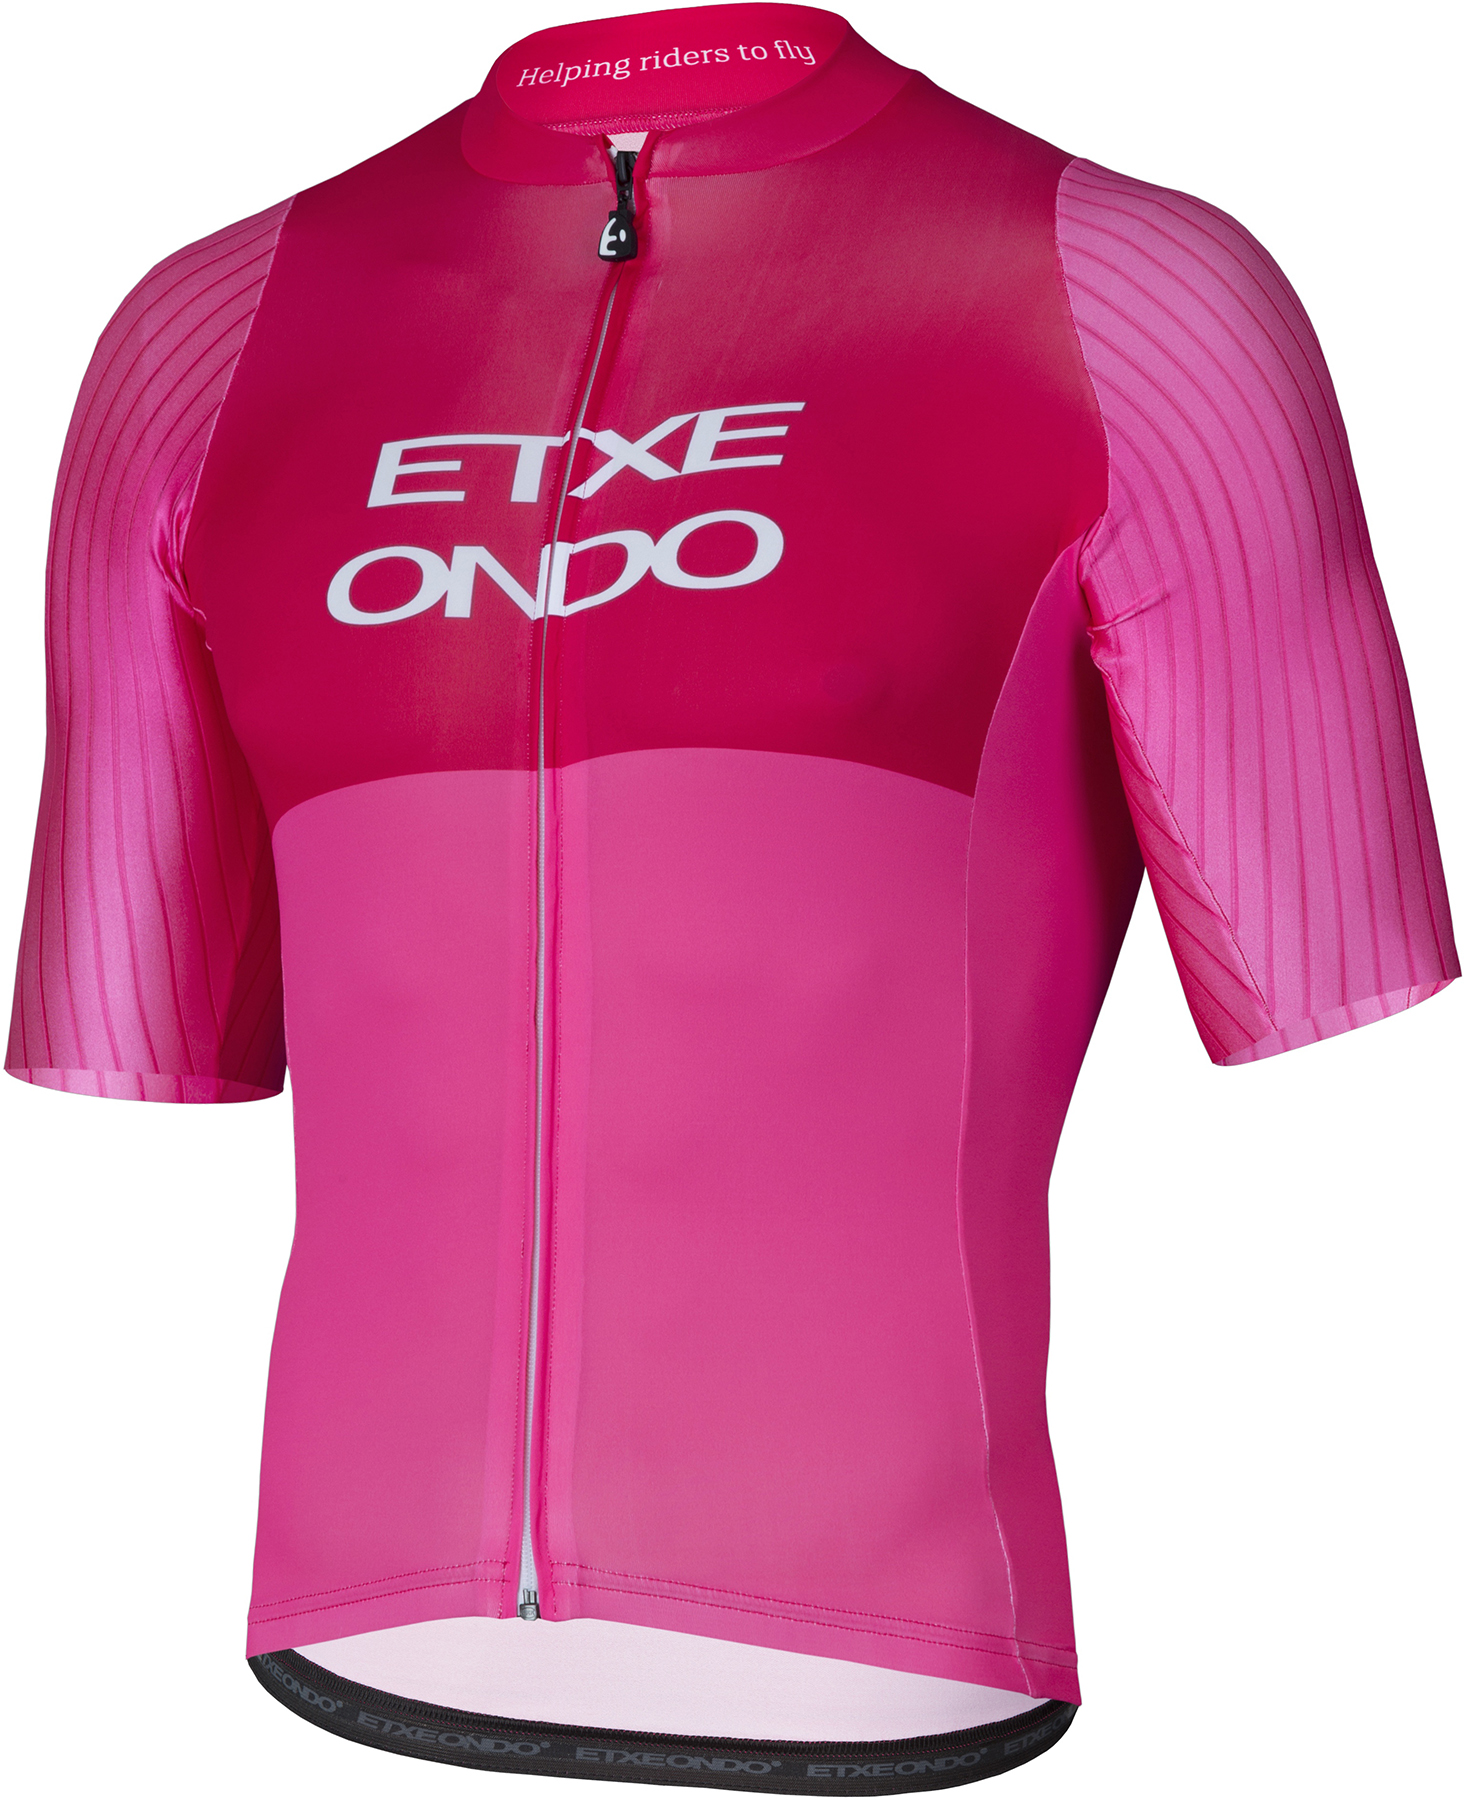 Etxeondo On Aero Jersey | Jerseys